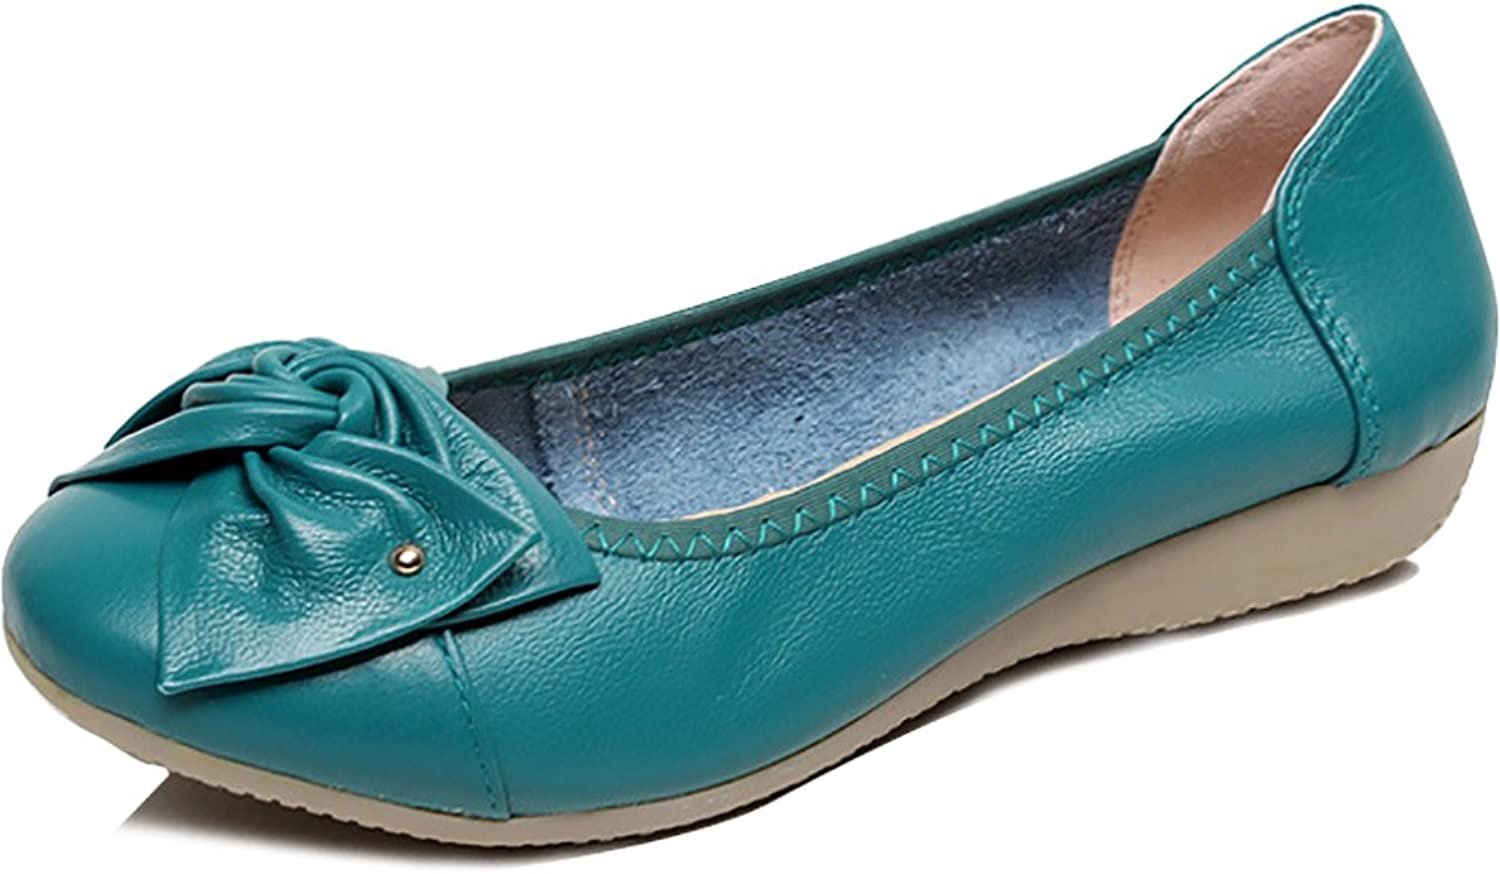 Odema Women's Slip On Flat Driving Loafers Mother shoes